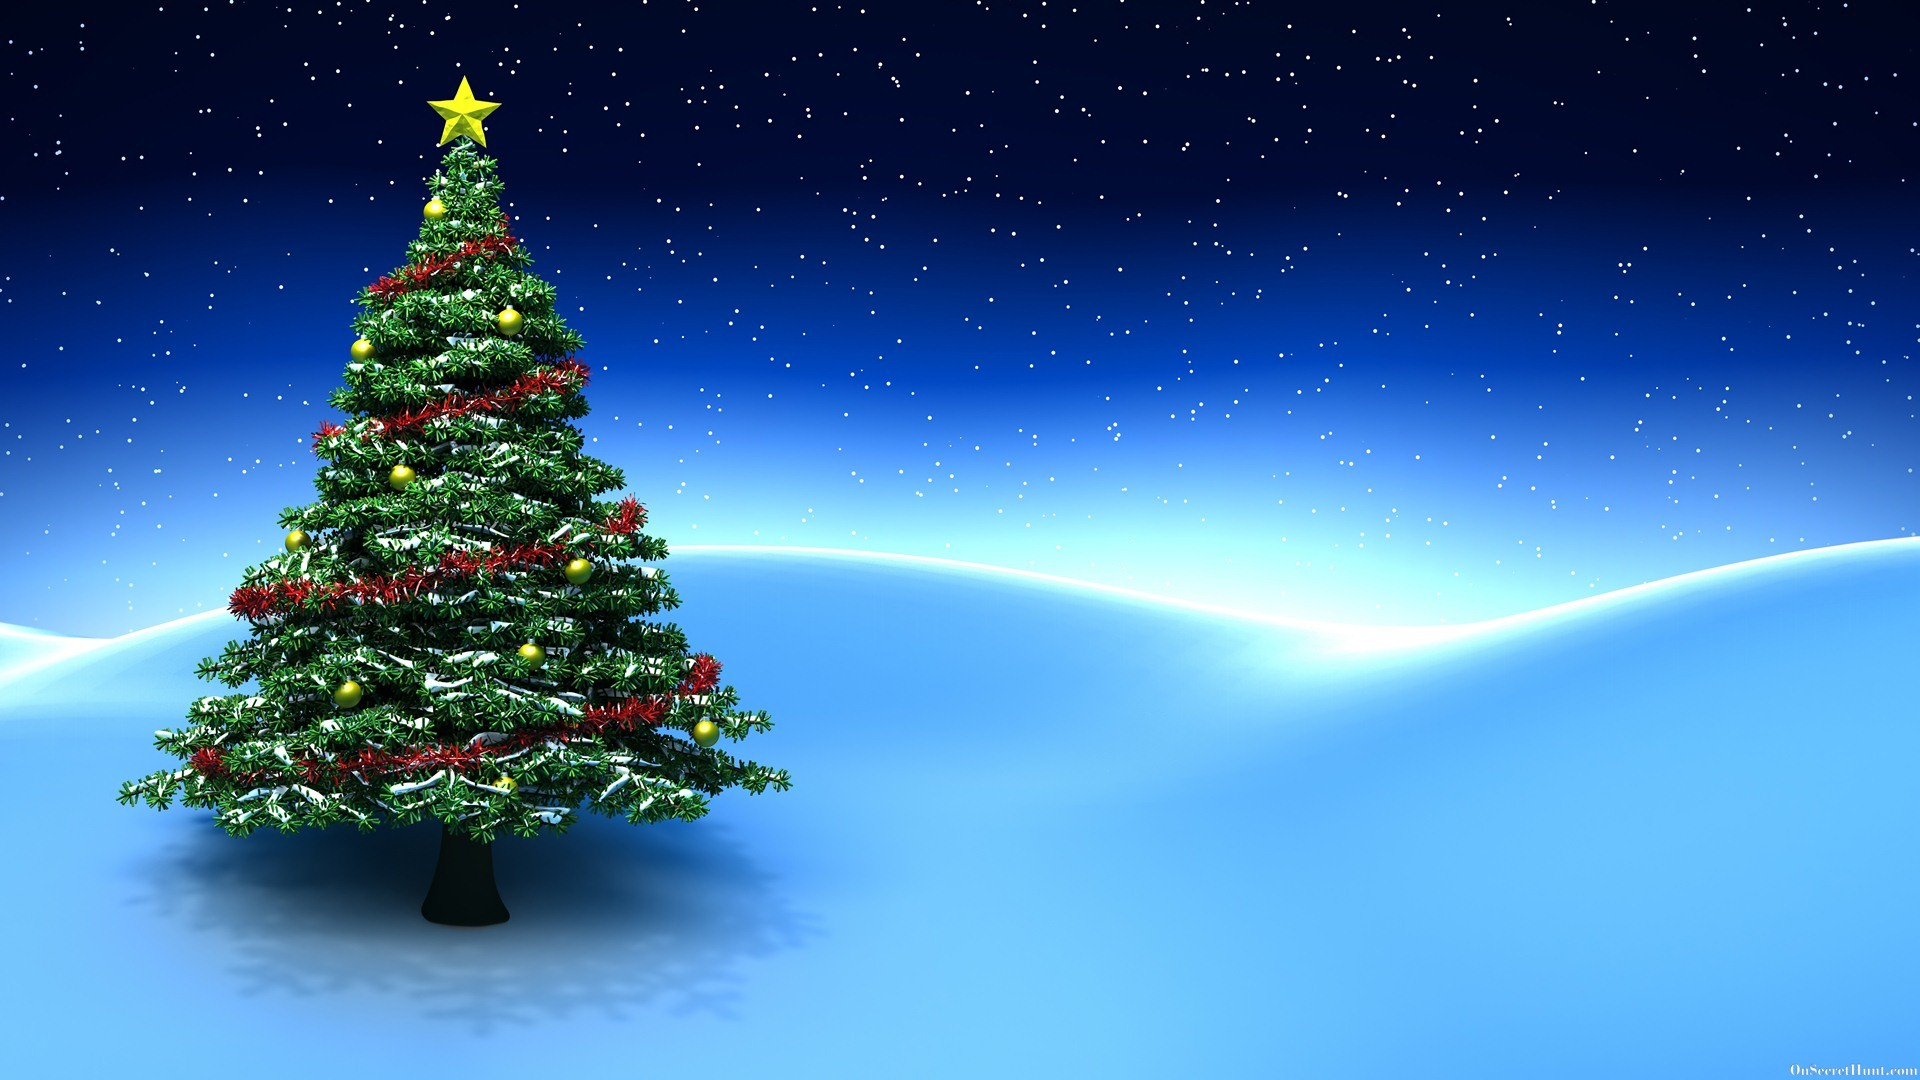 Beautiful christmas tree wallpaper - 3d Christmas Tree Blue Background Desktop Wallpaper